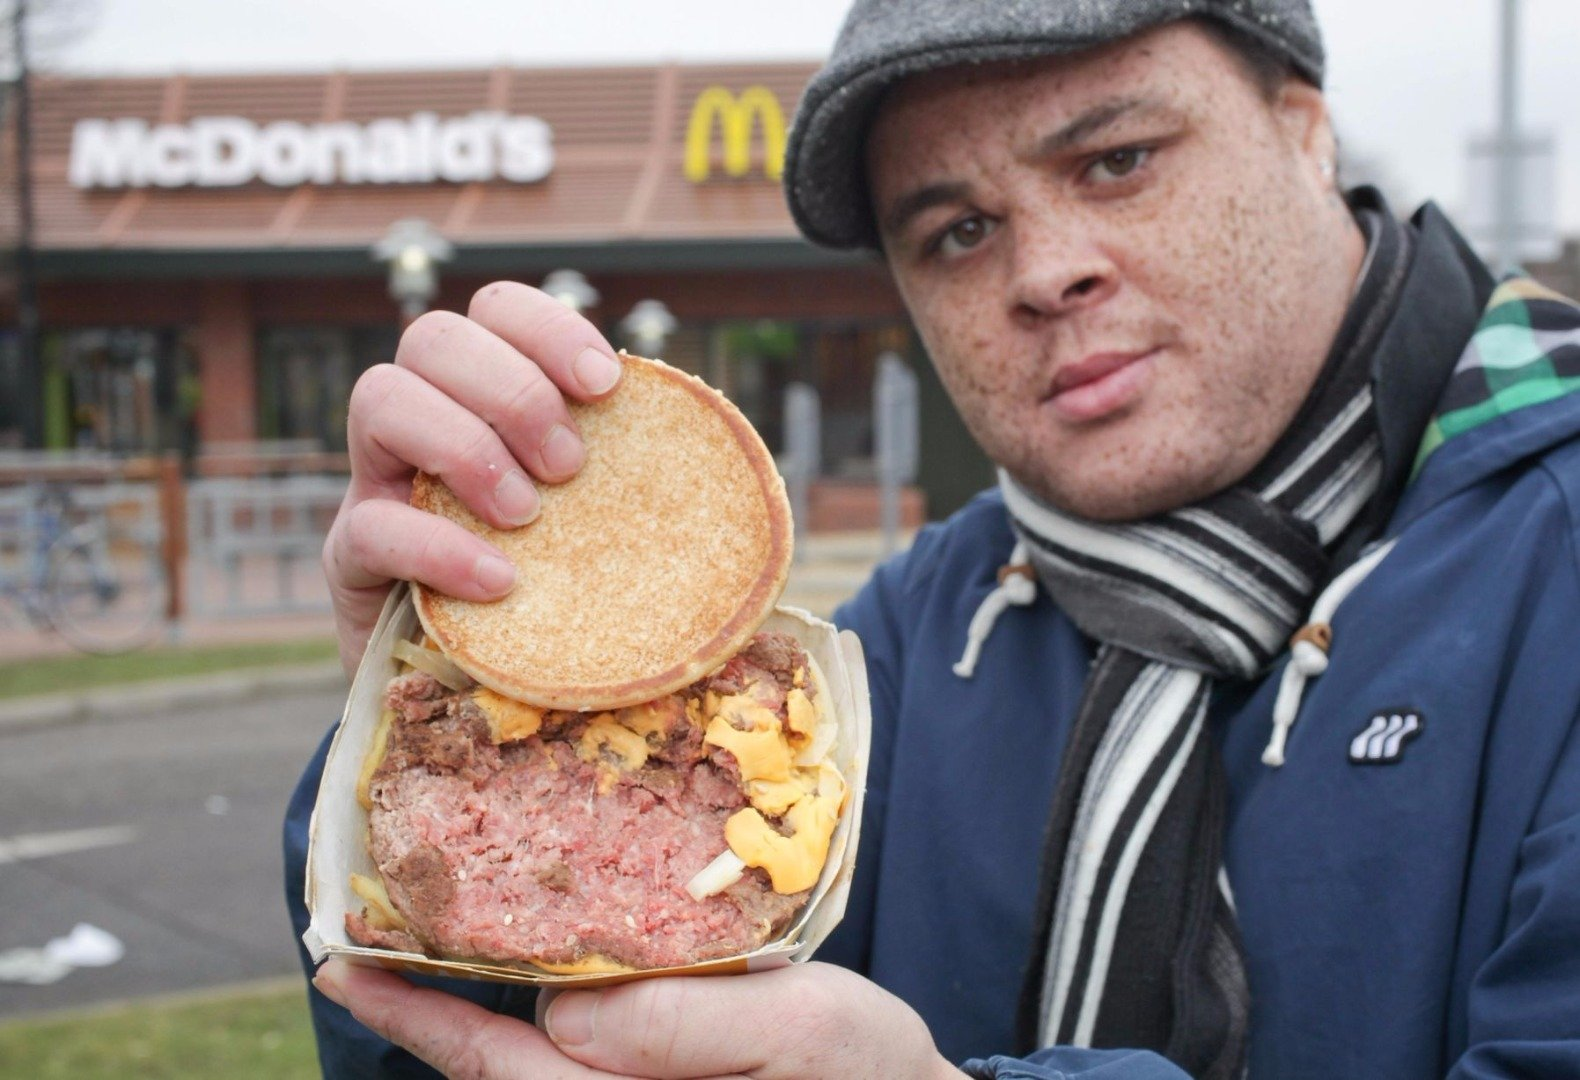 10 Disgusting Things Found In McDonald's Food